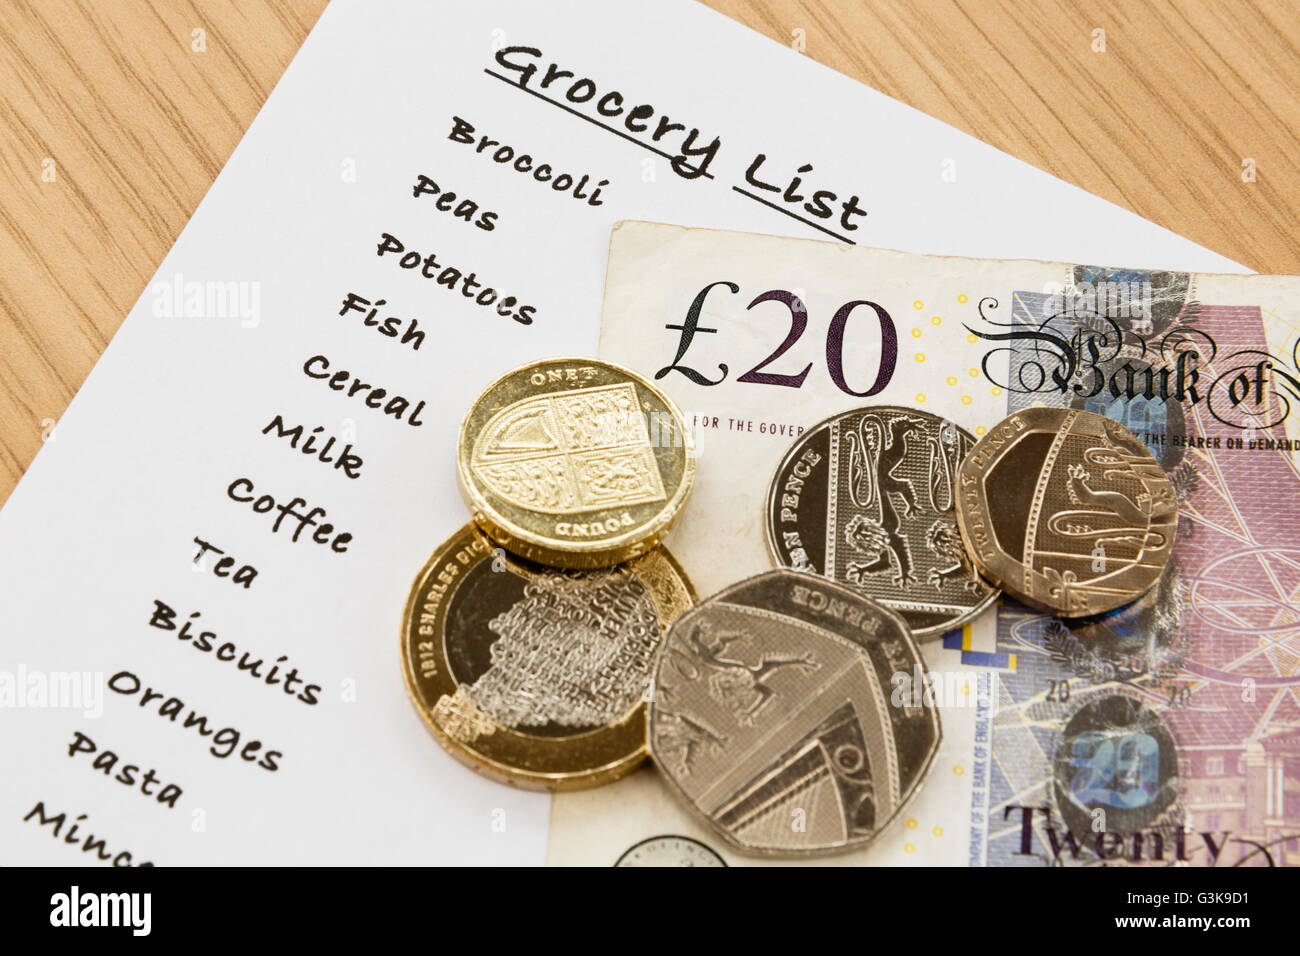 Shopping list for groceries with sterling money from above. England, UK, Britain, Europe - Stock Image